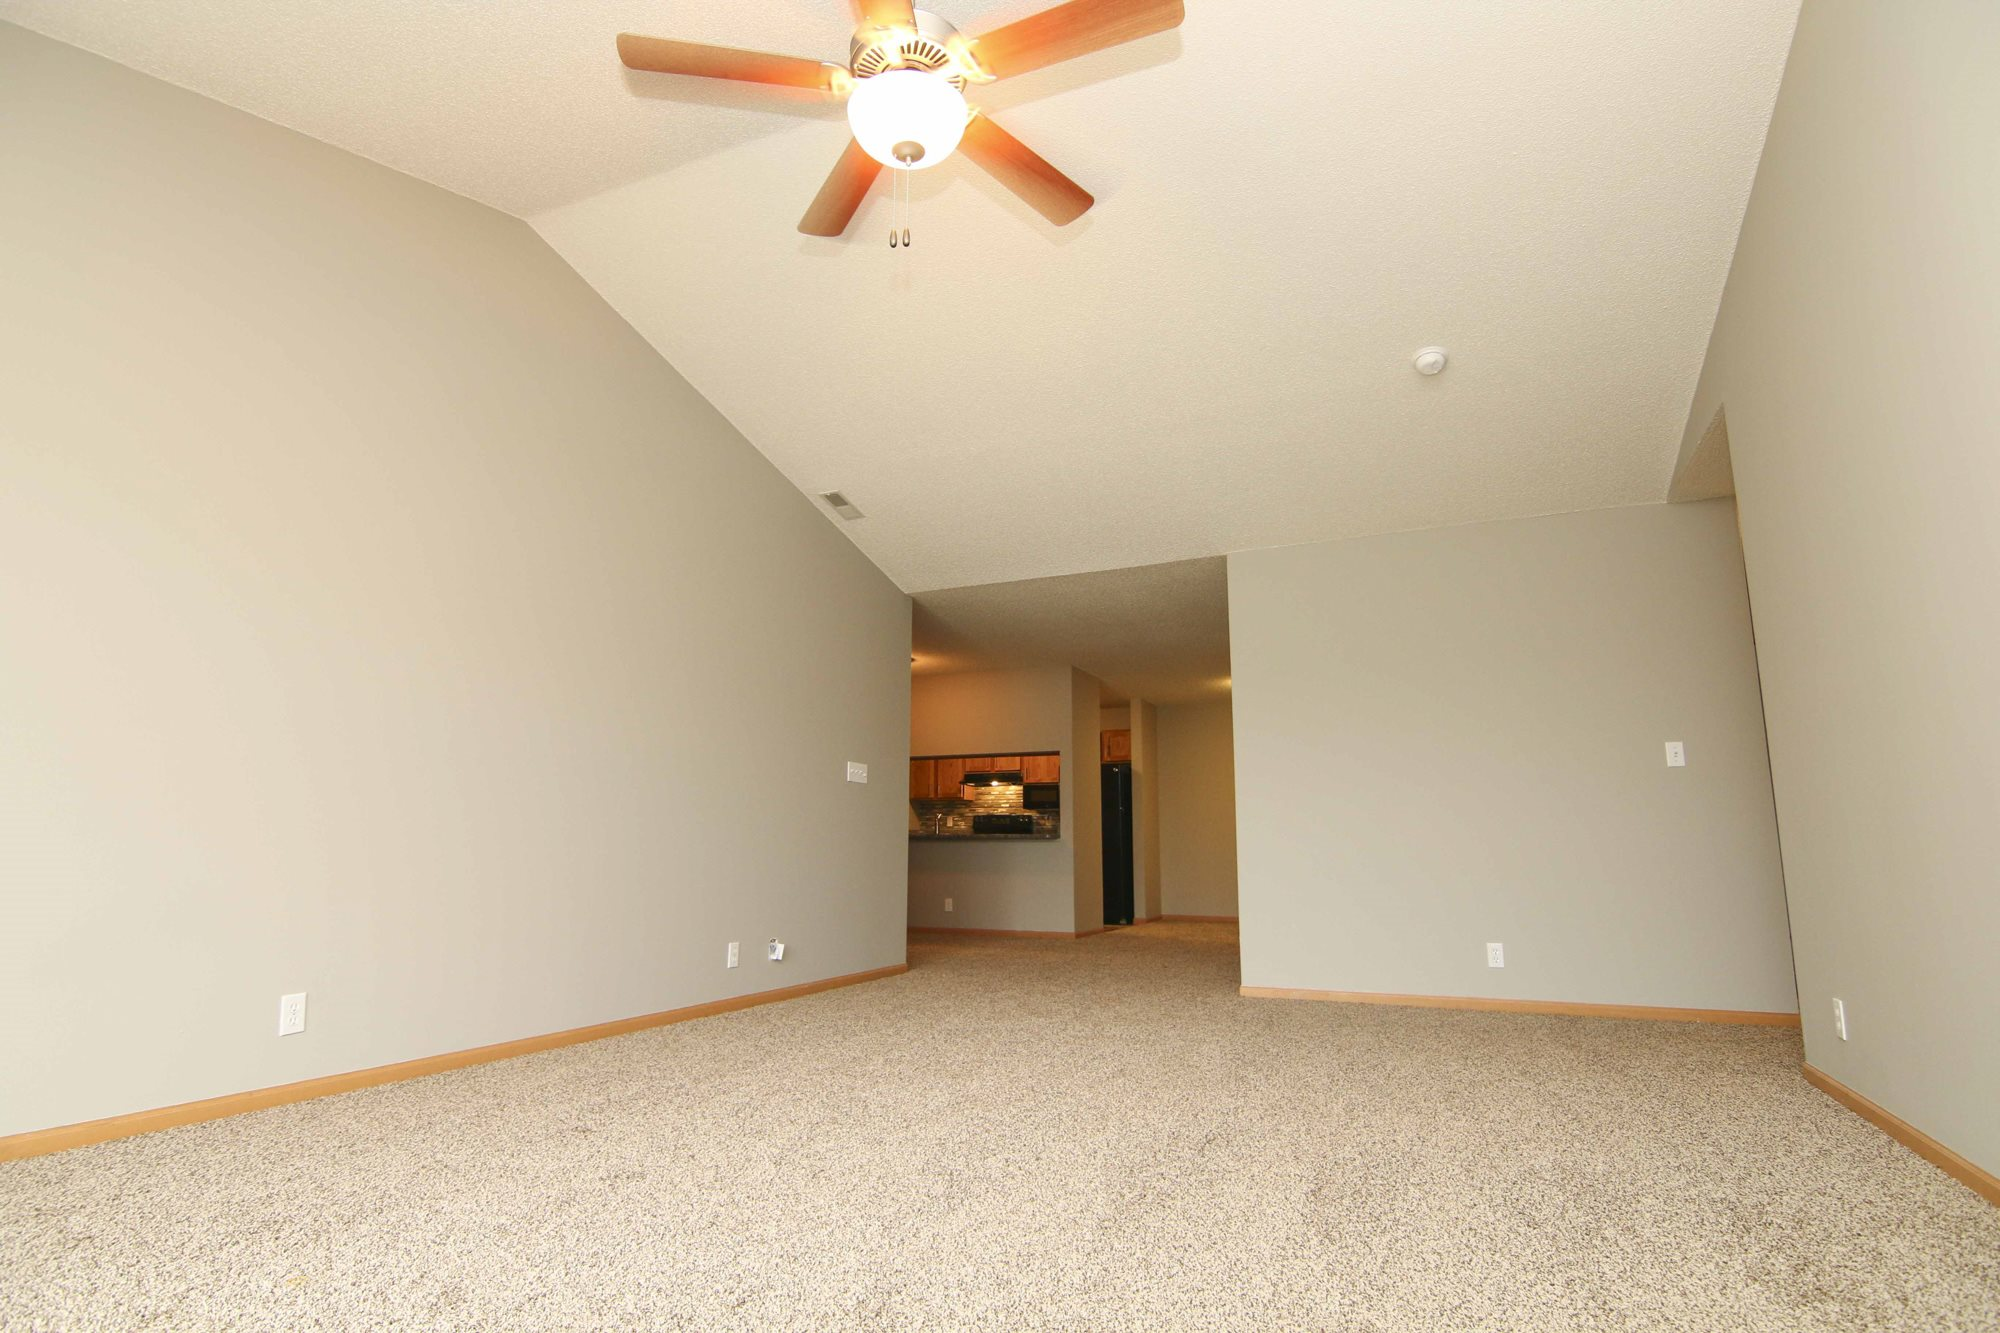 Interiors-Updated three bedroom apartment at Northbrook Apartments